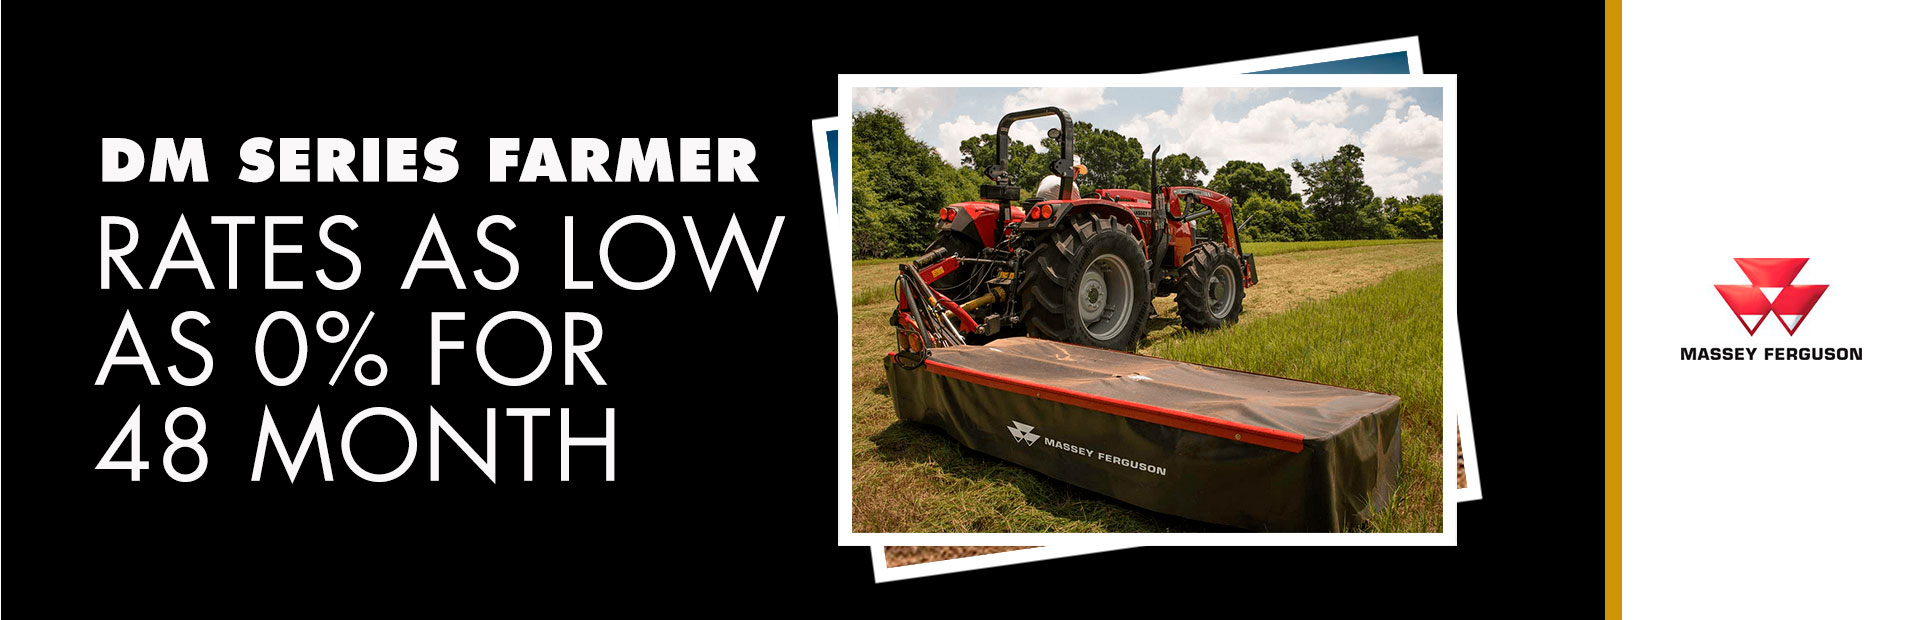 Massey Ferguson: DM Series Farmer - Rates as low as 0% for 48 Month